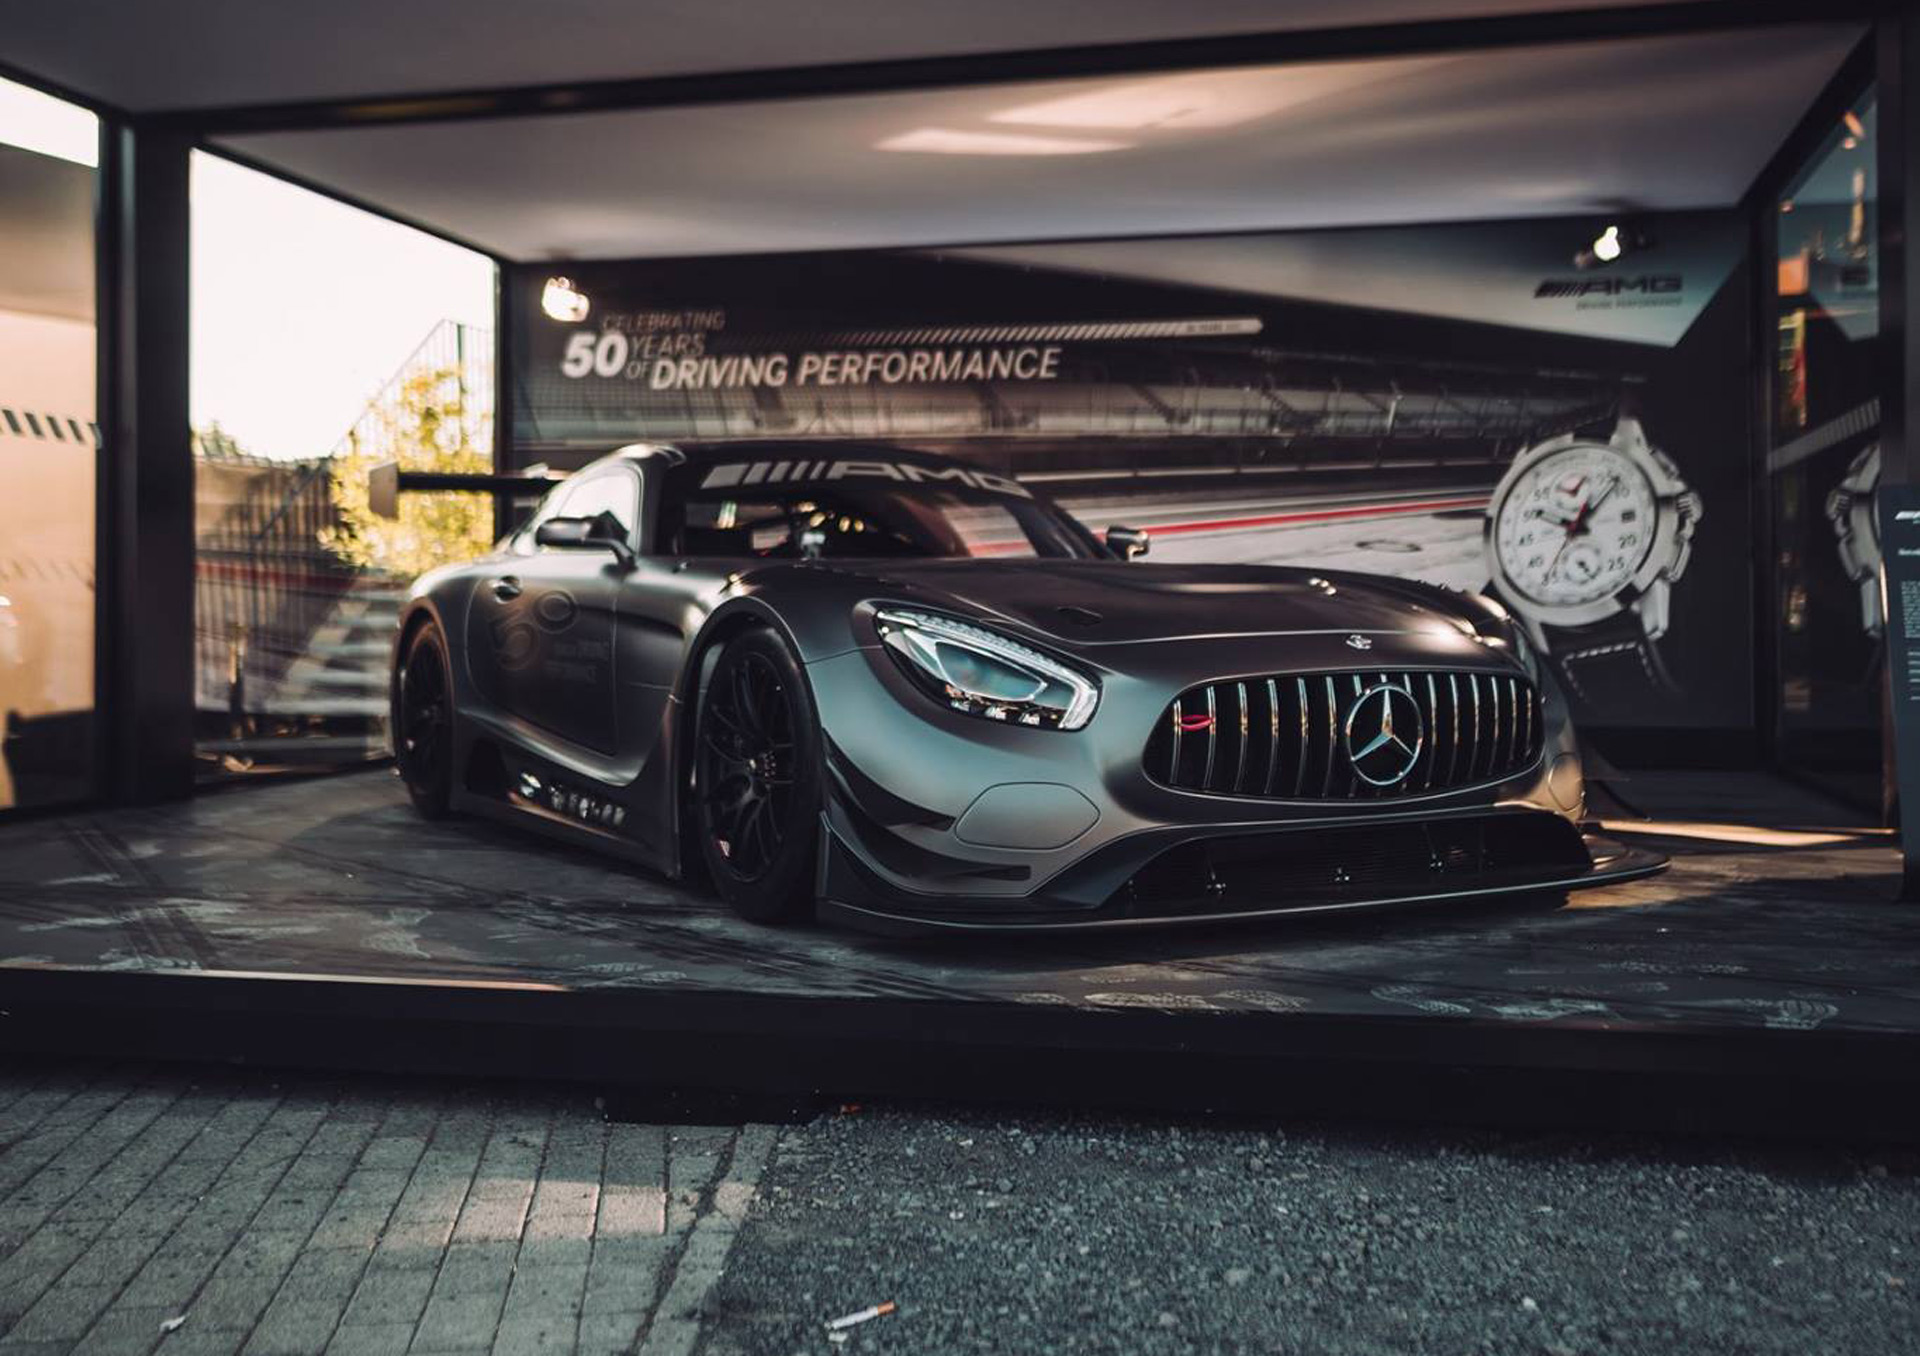 2017 Mercedes Amg Gt3 Edition 50 Debuts Limited To 5 Cars